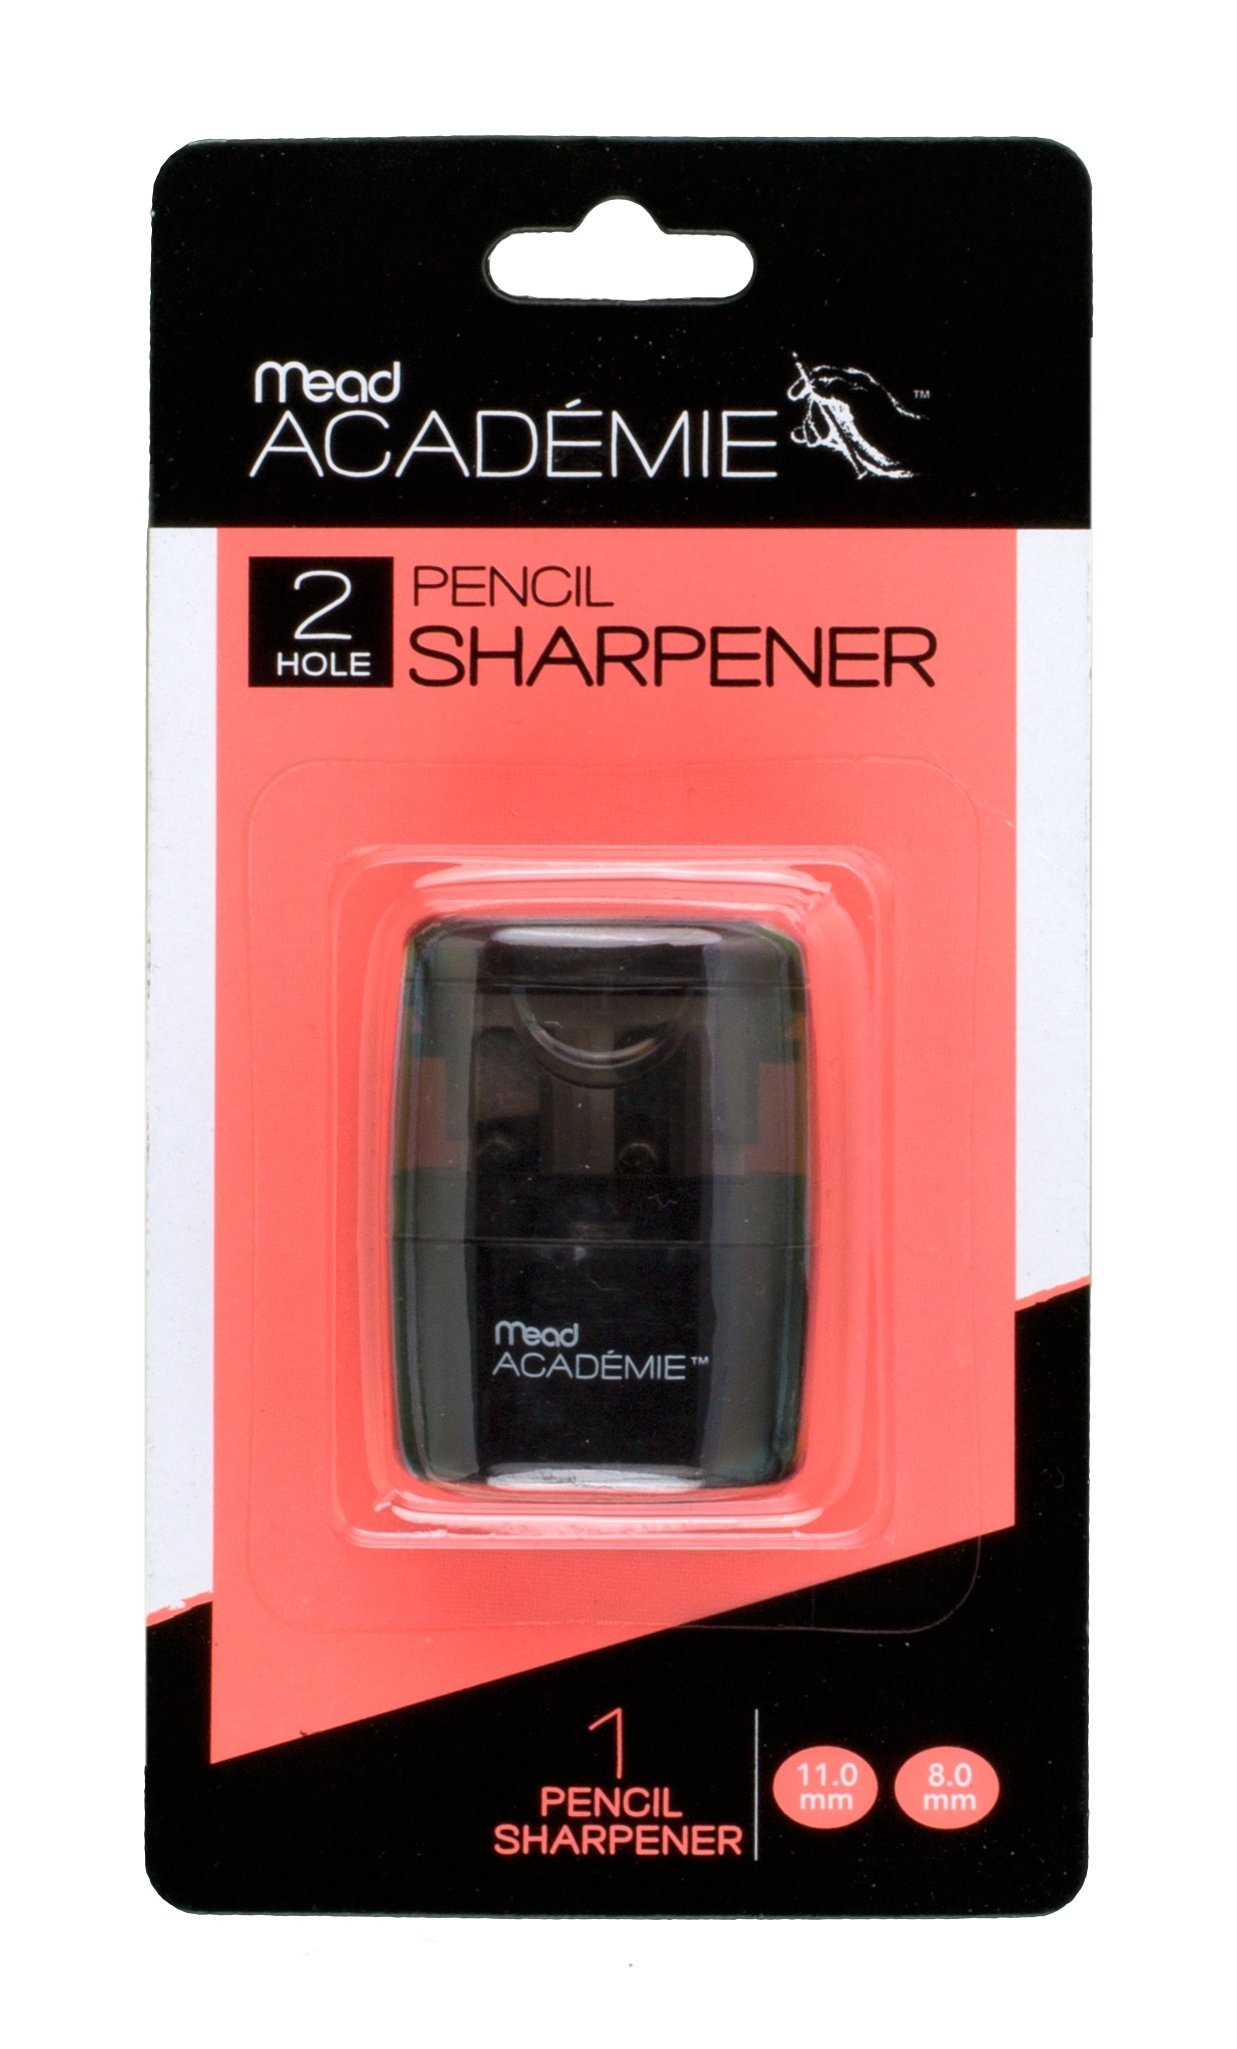 Mead Academie Manual Pencil Sharpener, 1.75 H x 1.25 W Inches, Black (98030)